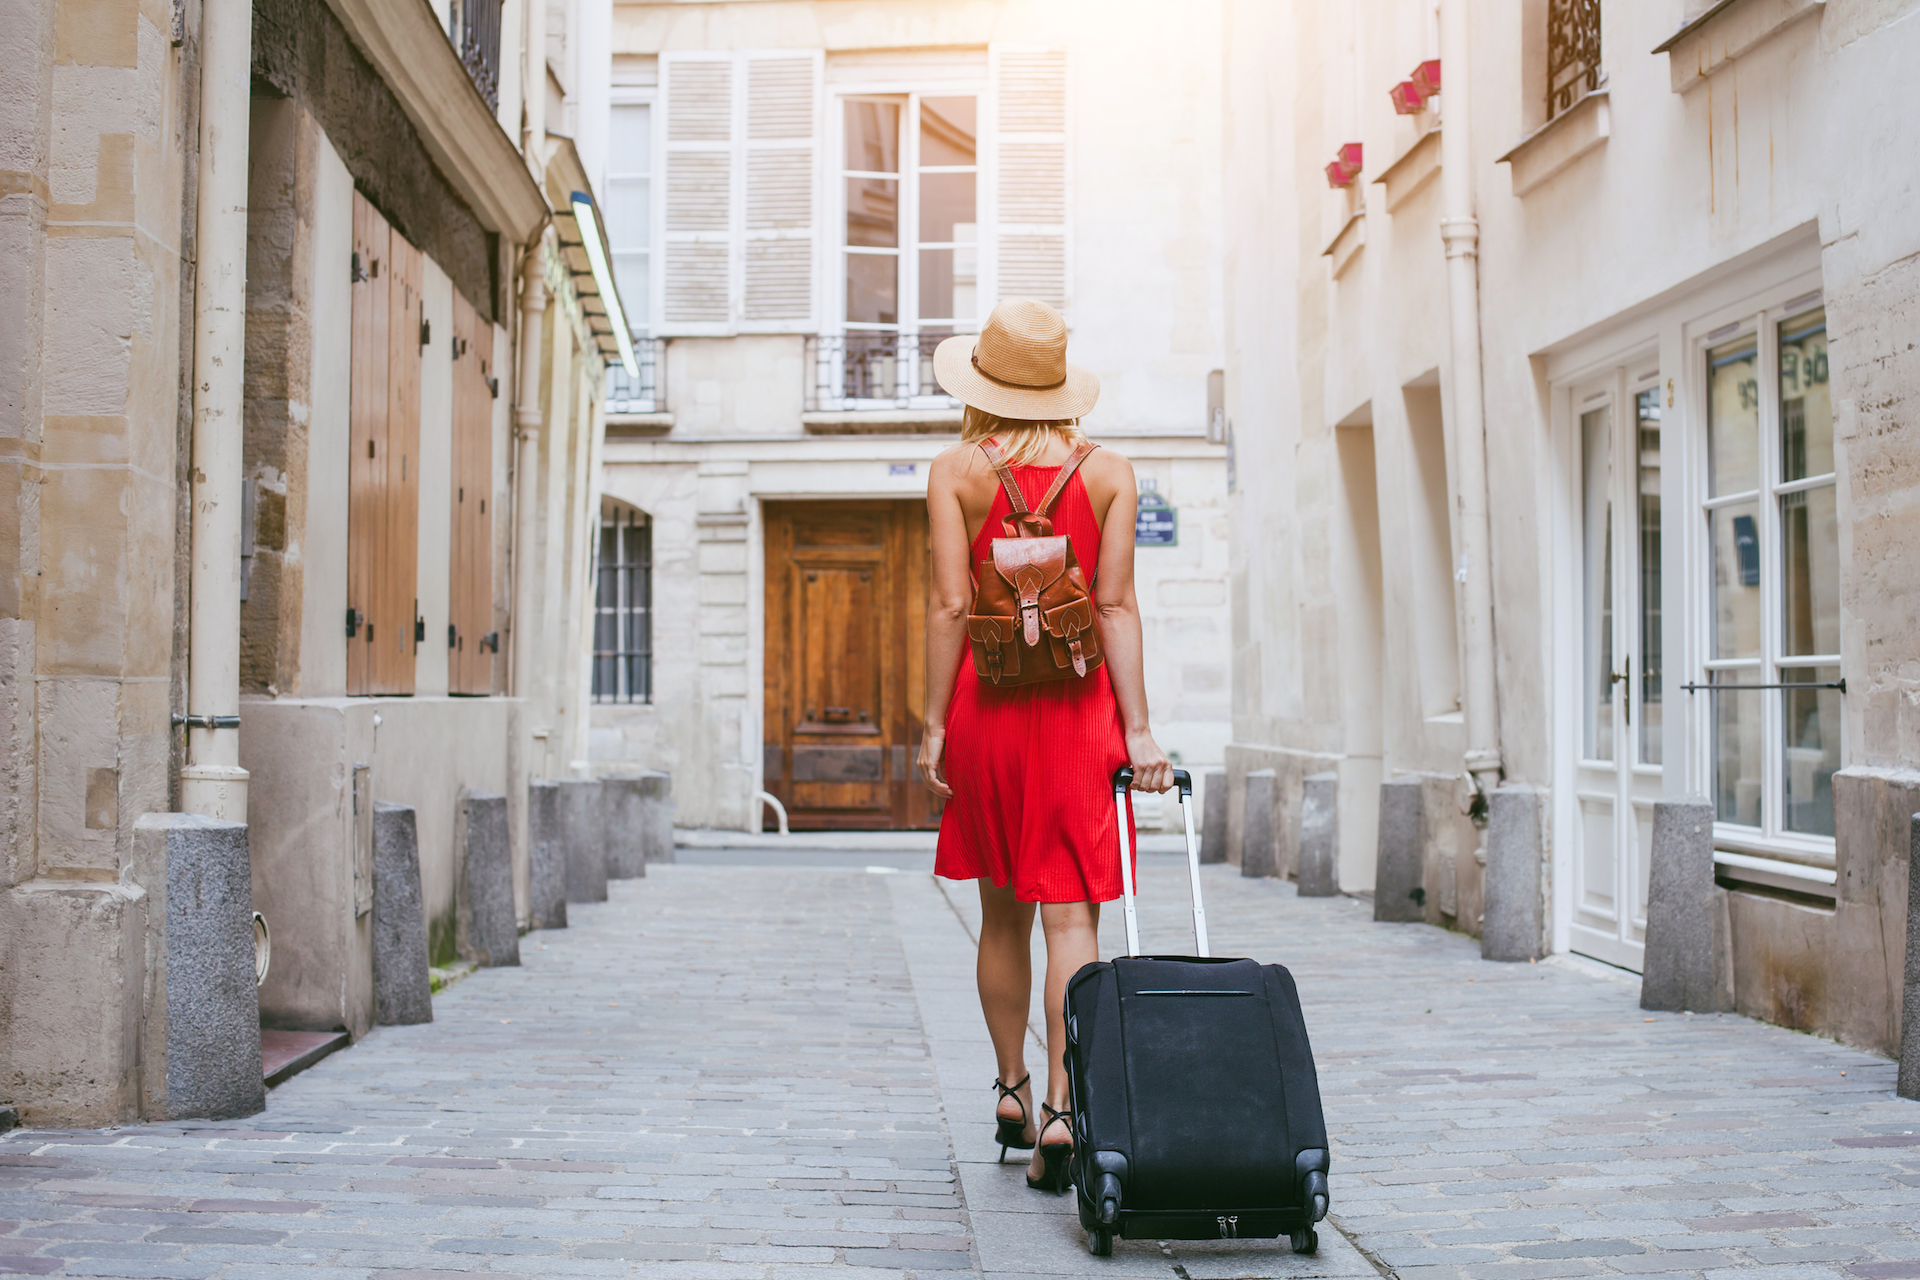 Woman in red dress and sun hat pulling her suitcase behind her as she walks into a hotel